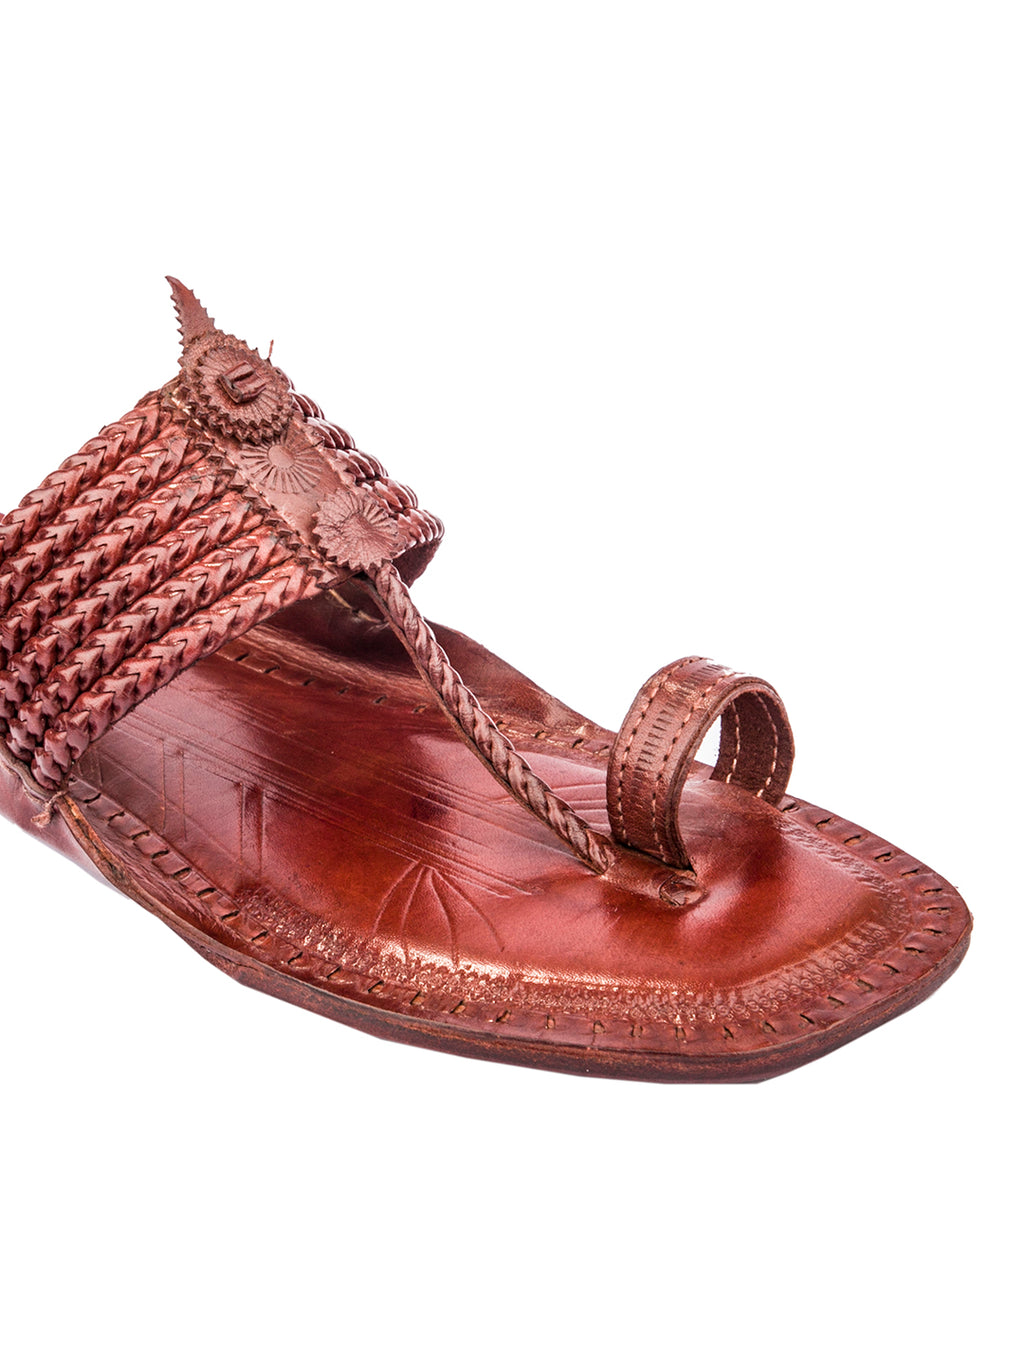 Six Braided Kolhapuri Chappal